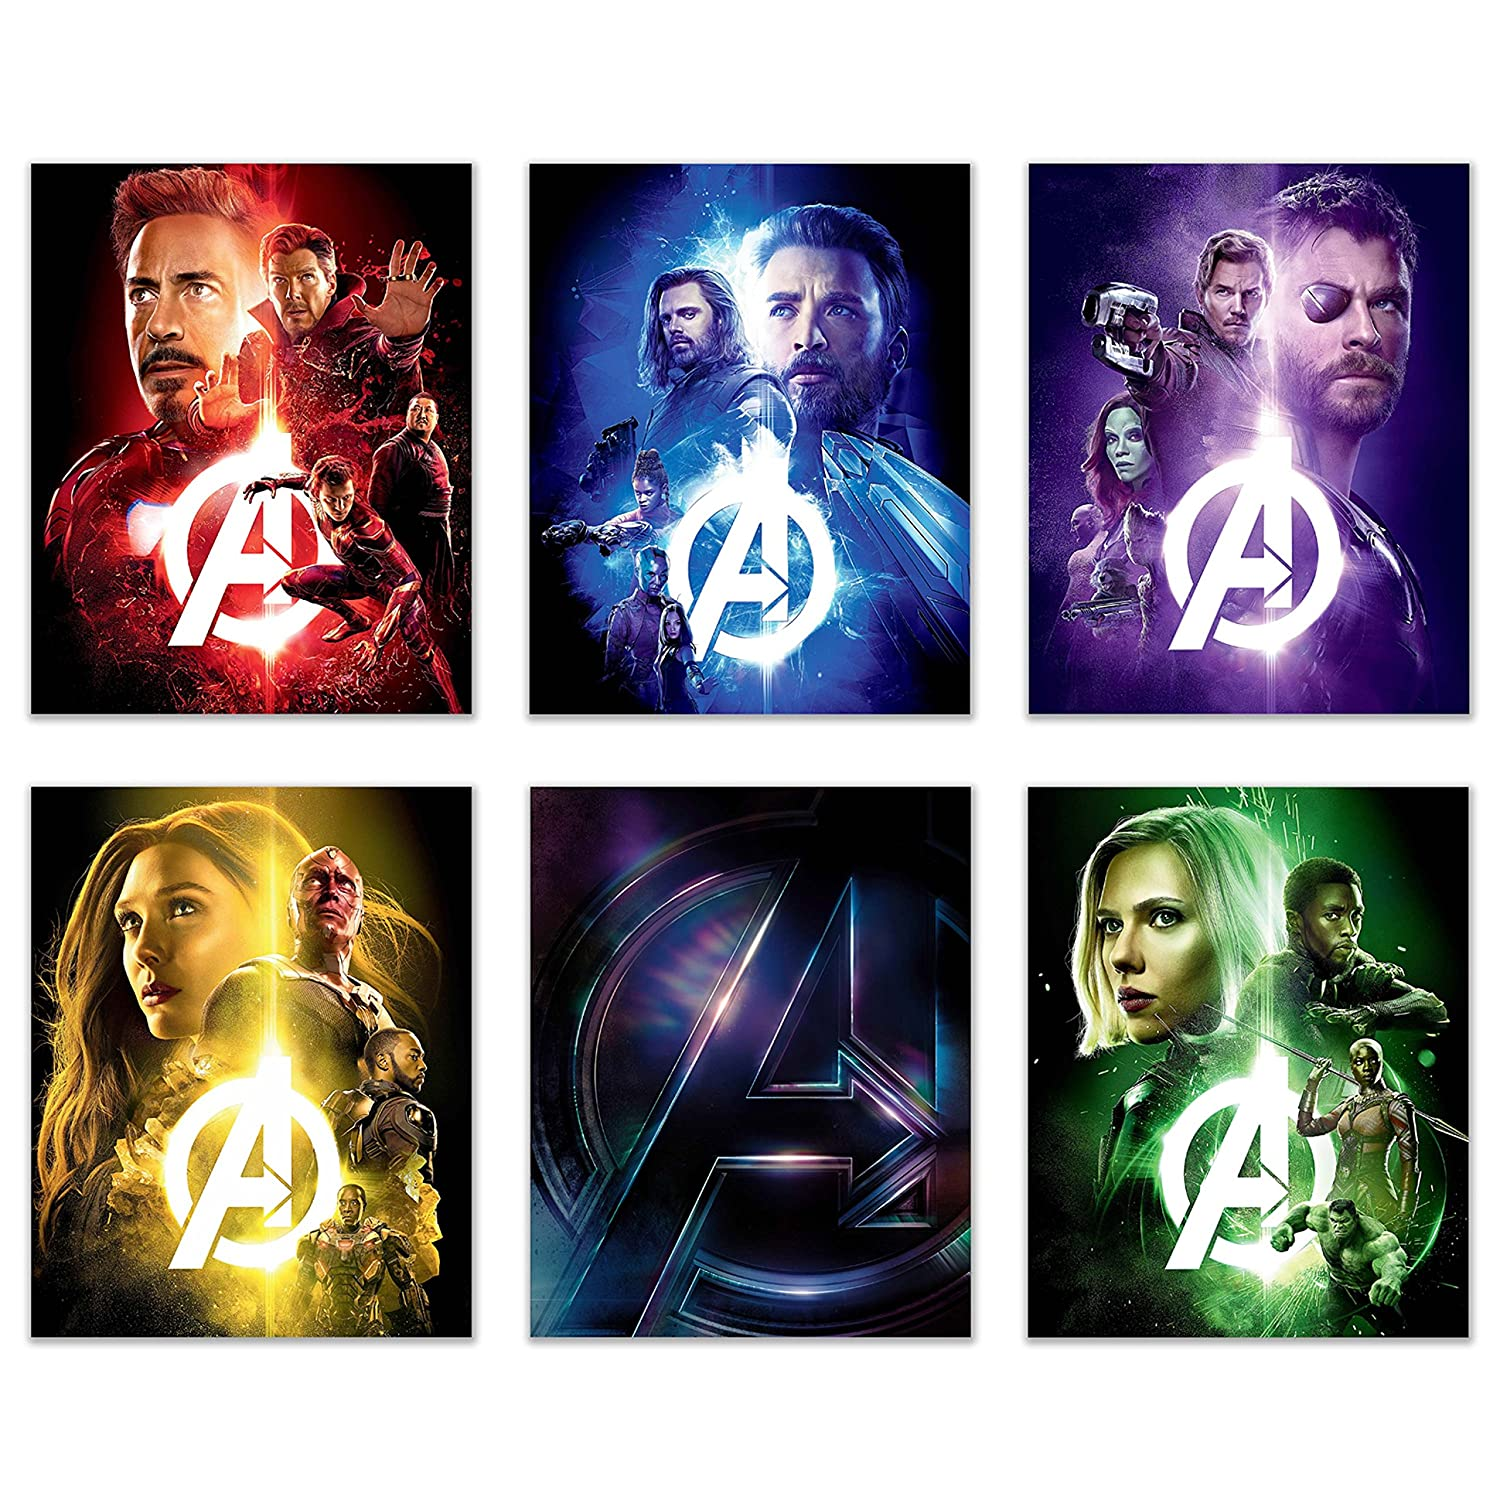 Marvel Avengers Wall Decal, Avengers, Infinity War, Marvel Universe, MCU, Iron Man, Thor, Thanos, cosplay gear, action figures, Marvel items, Hulk, Spider Man, Captain America, Black Widow, Doctor Strange,